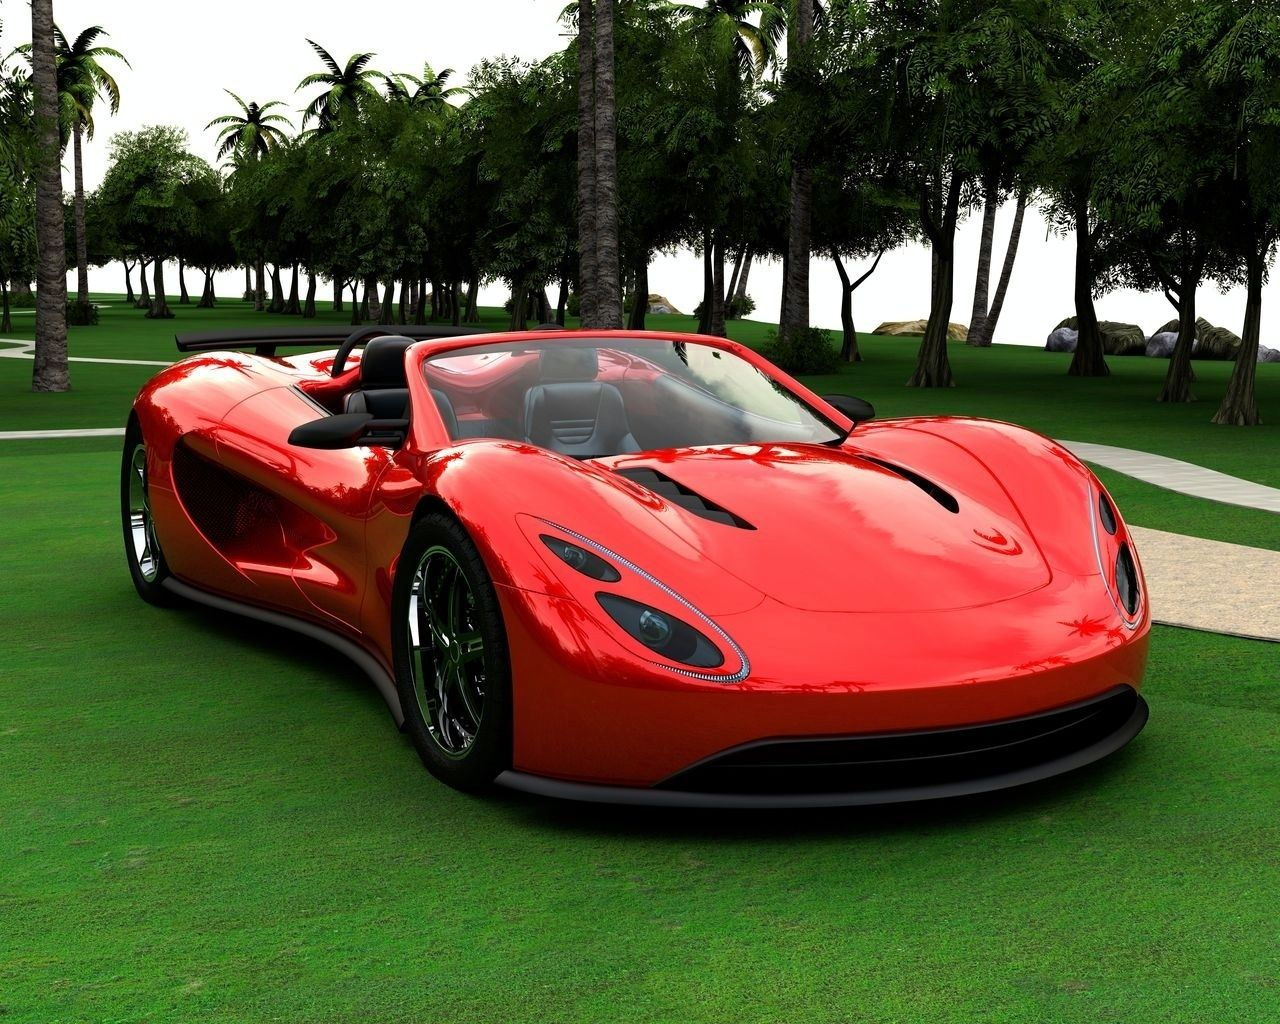 Sports Cars Wallpapers Unusual Attractions Aggressive Designs - Fancy sports cars